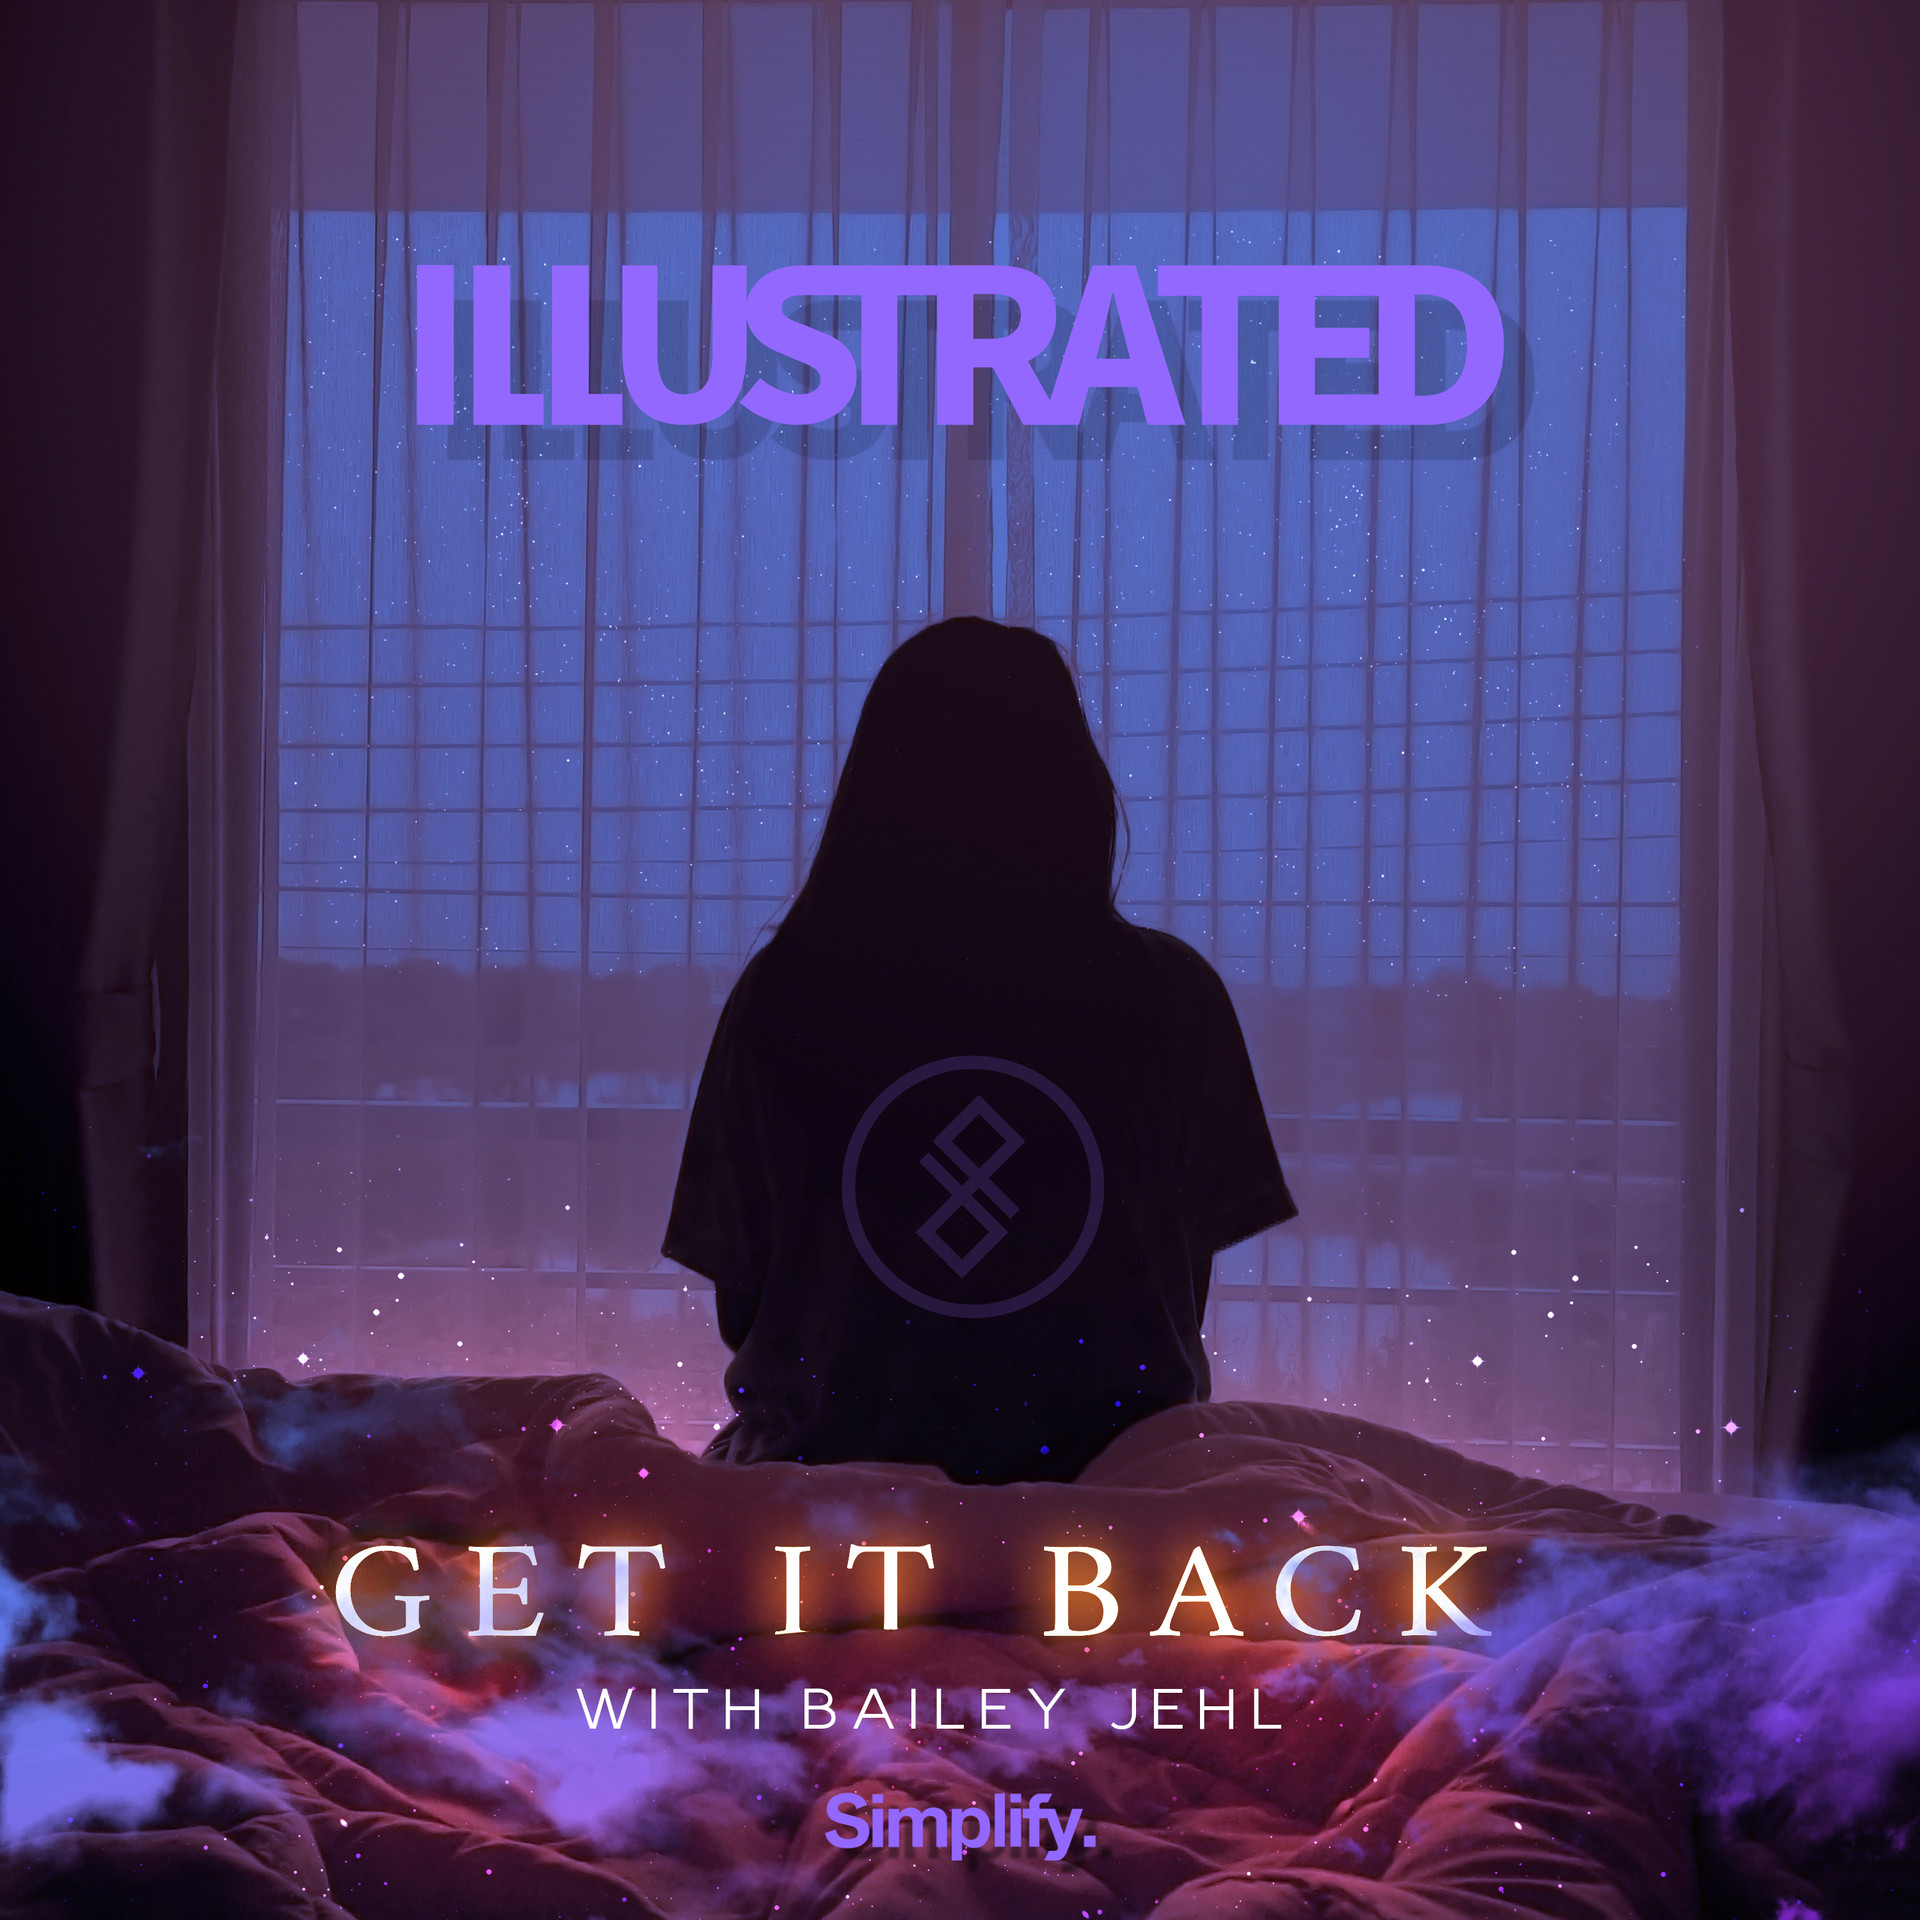 Get It Back_Cover Artwork_HQ_72dpi.jpg